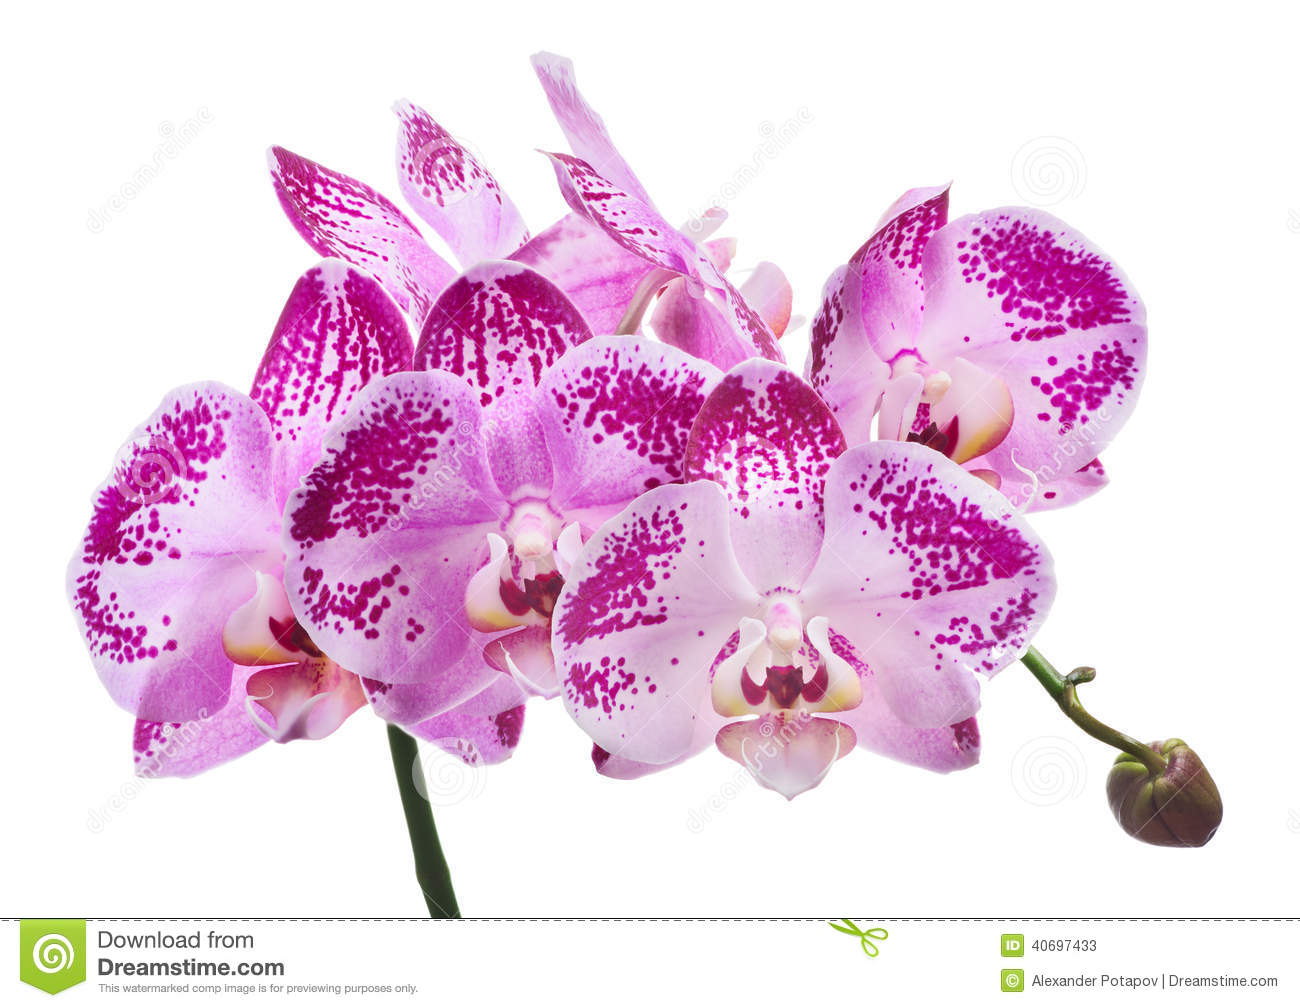 white spotted orchid flower - photo #9